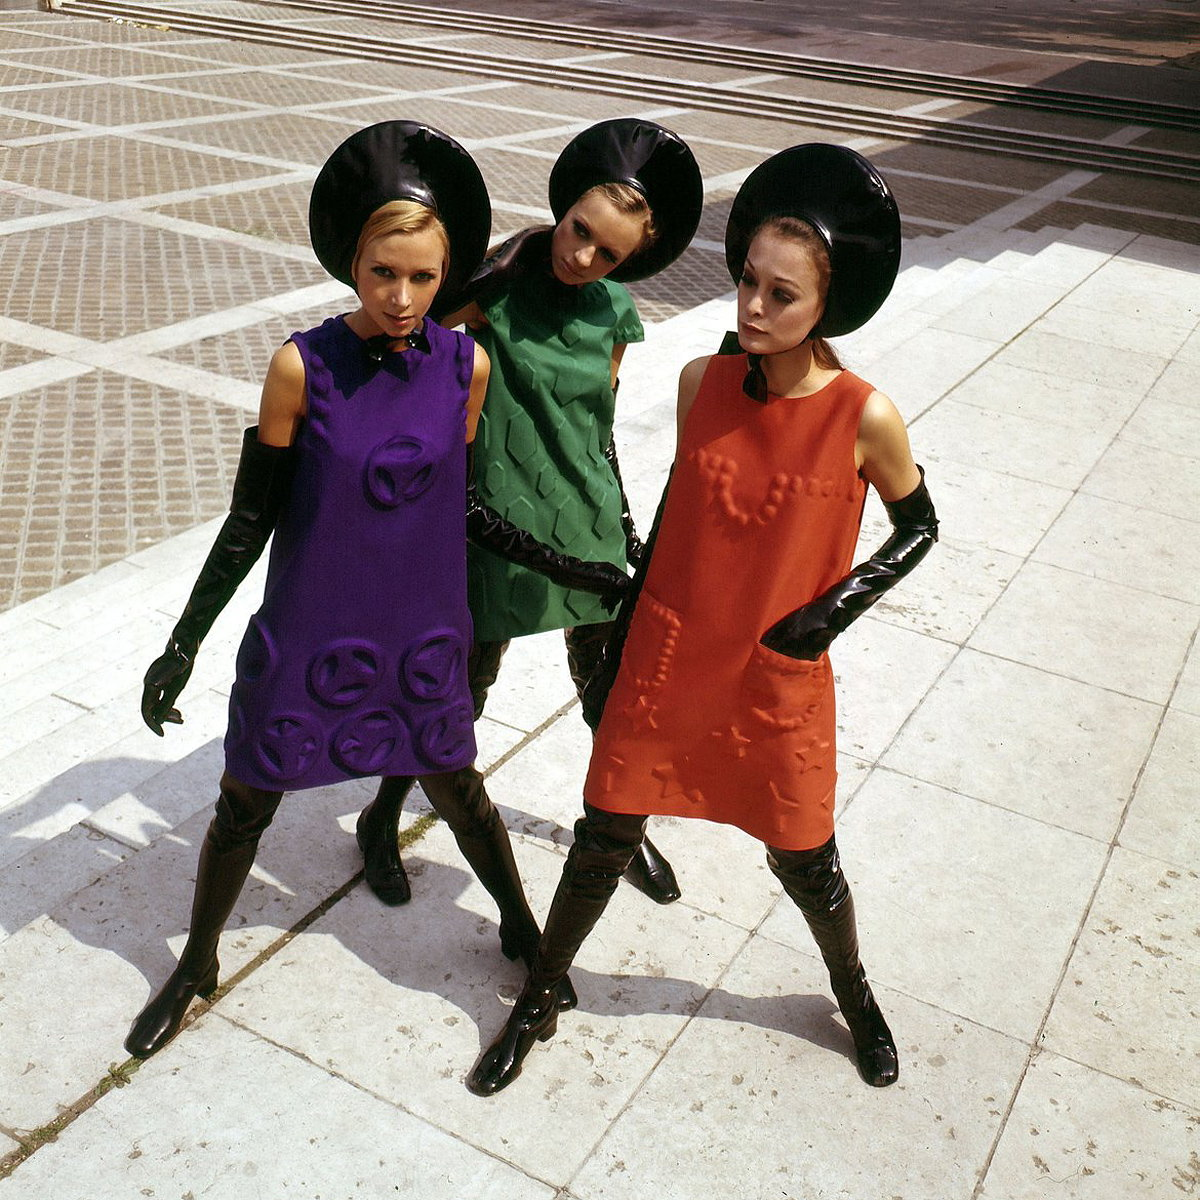 Pierre Cardin - Pursuit of the Future